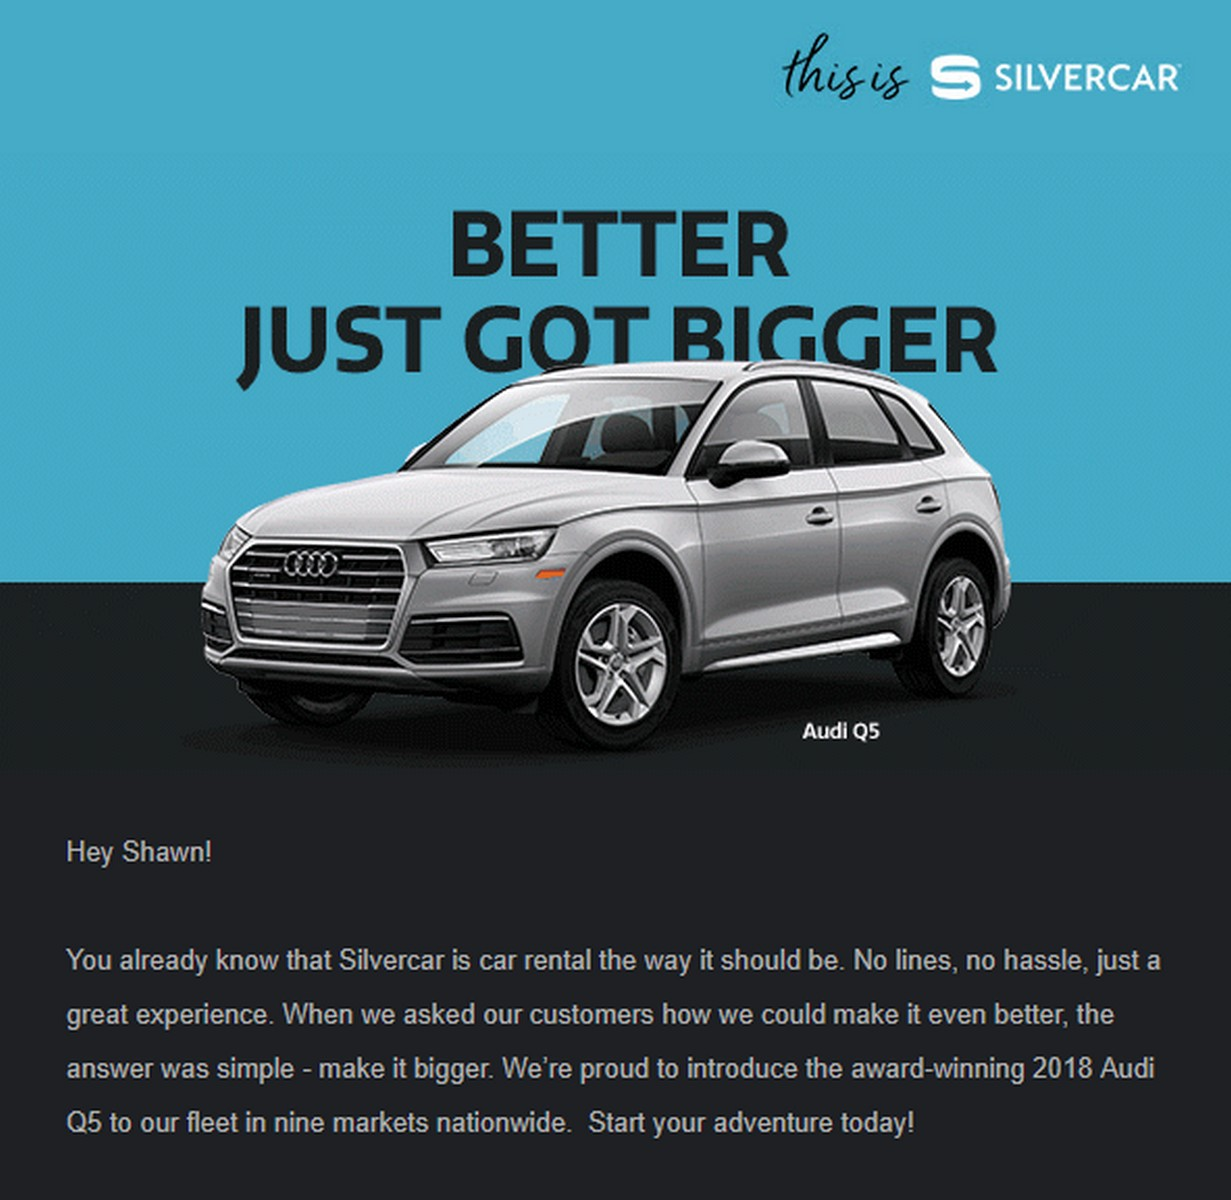 Silvercar Now Offers A SUV, The Audi Q5, Prices And Cities